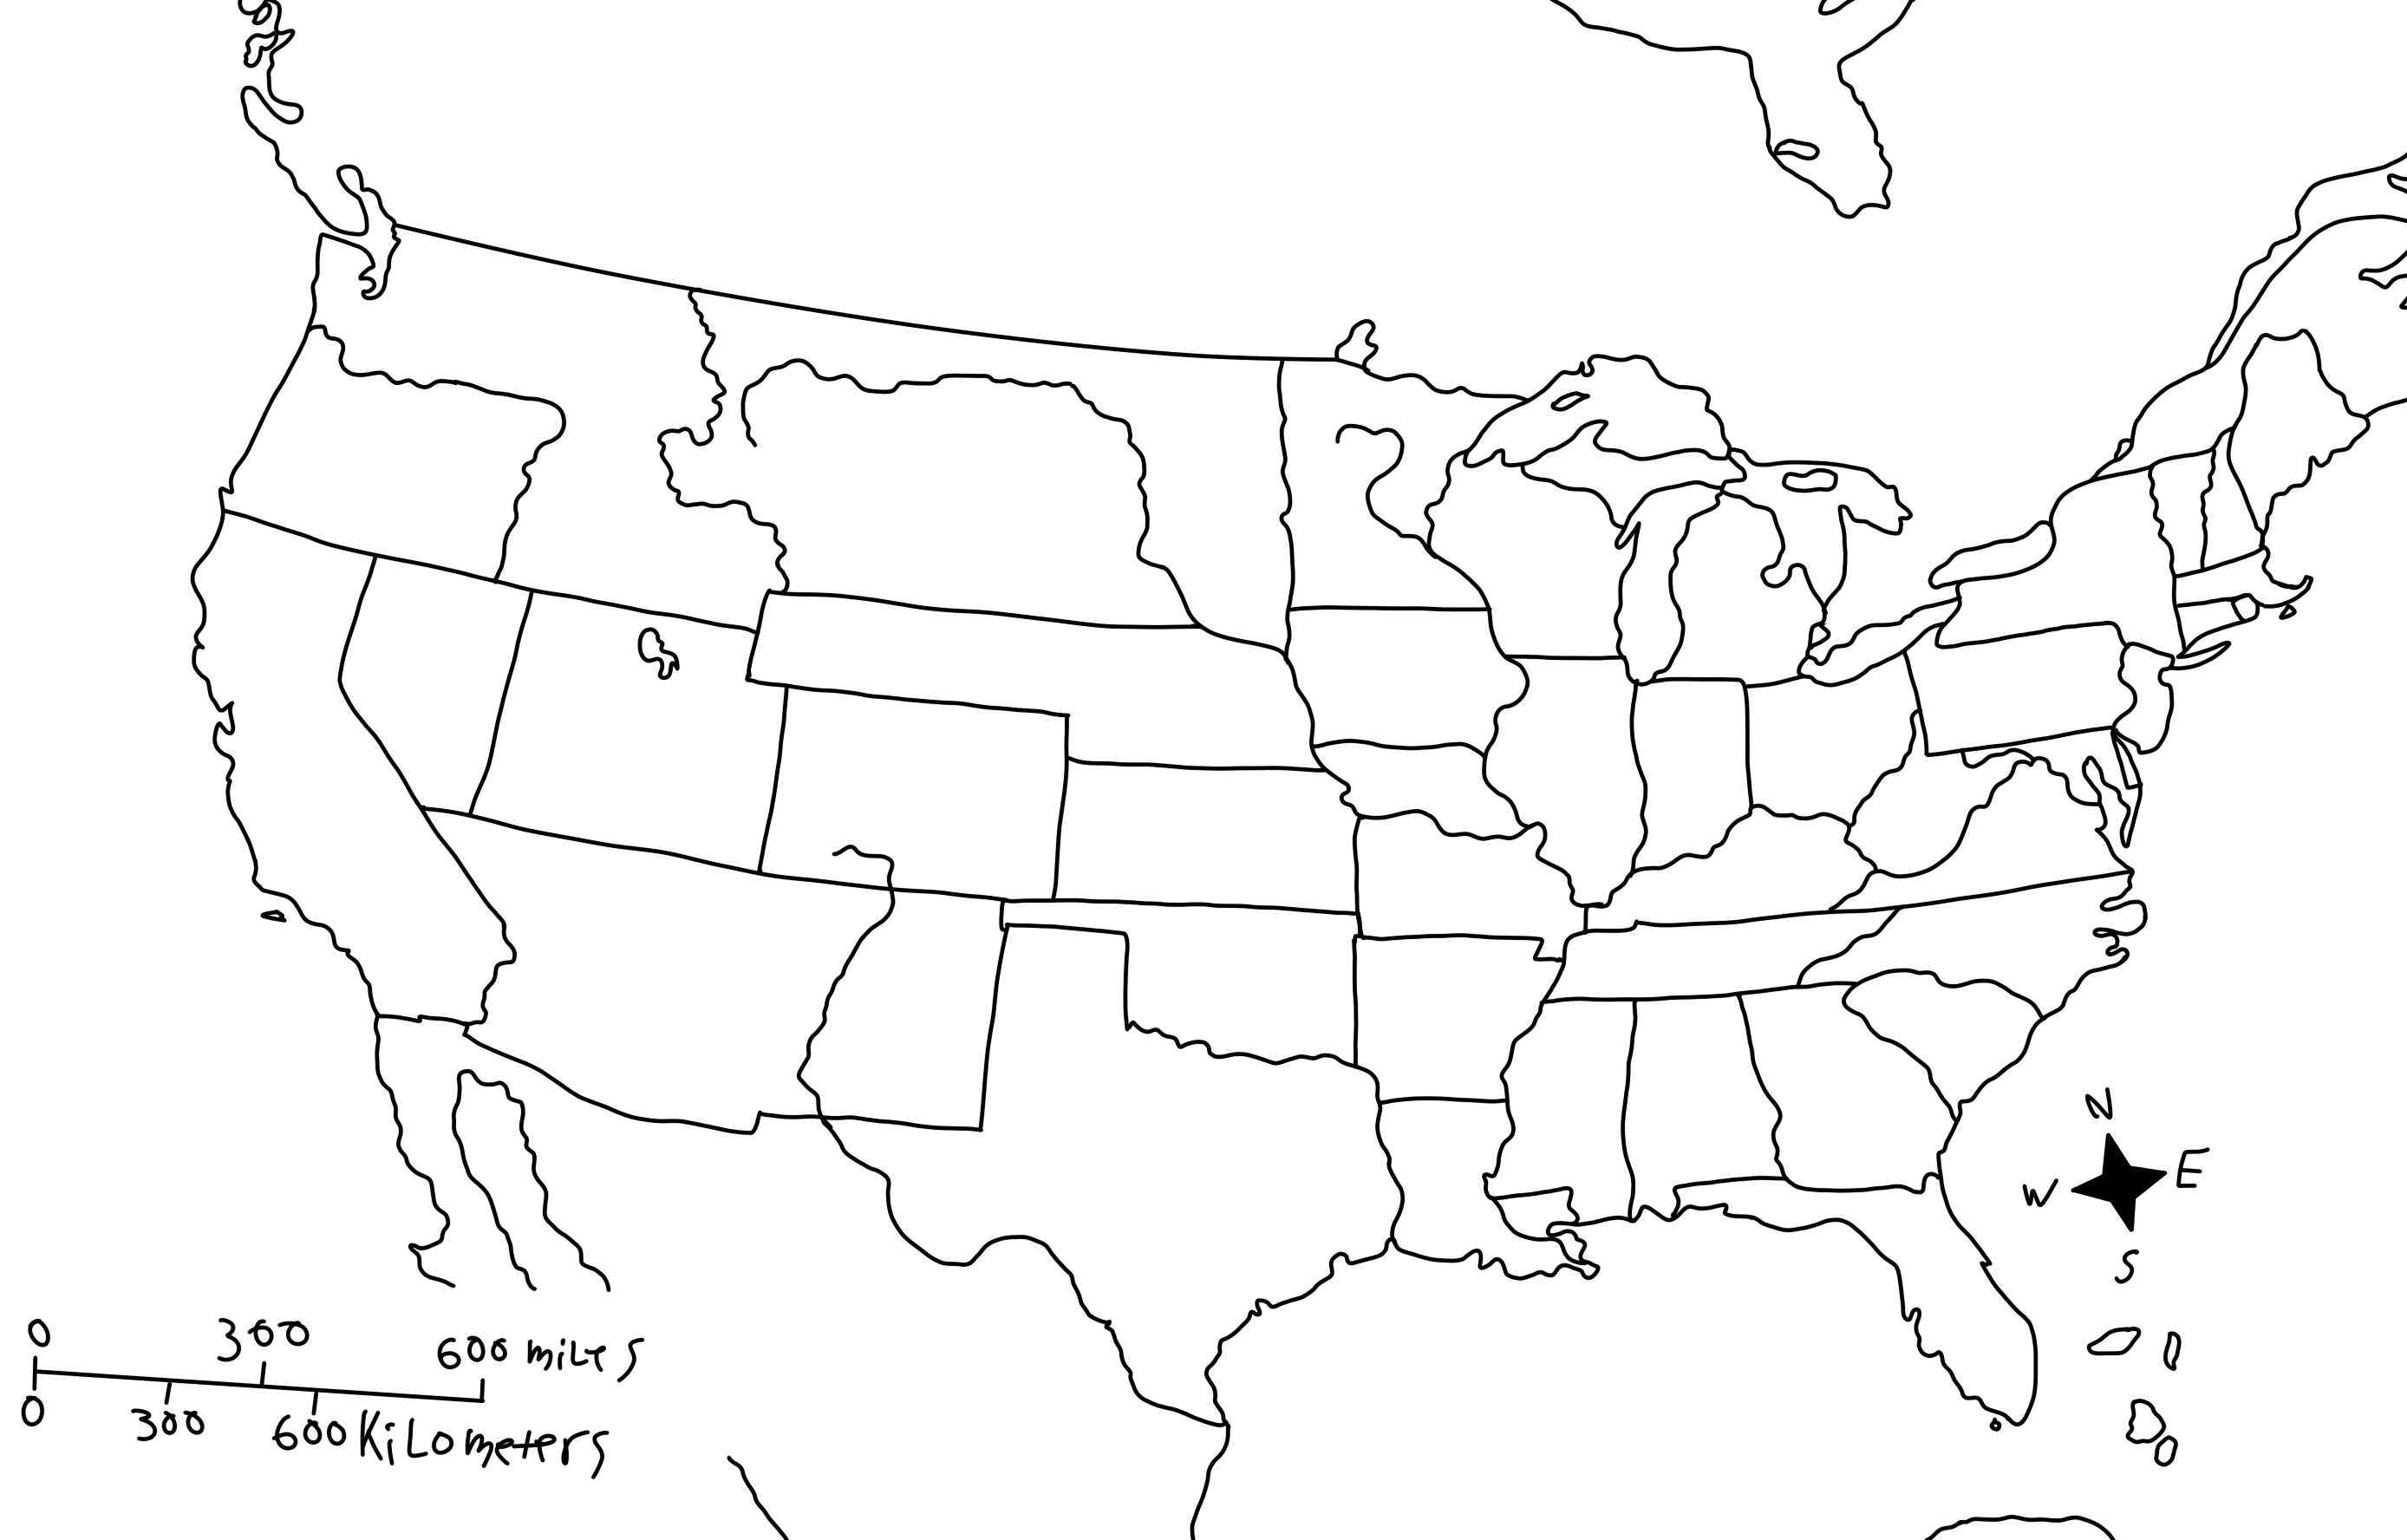 North America 1861 blank by ericremotesteam on DeviantArt